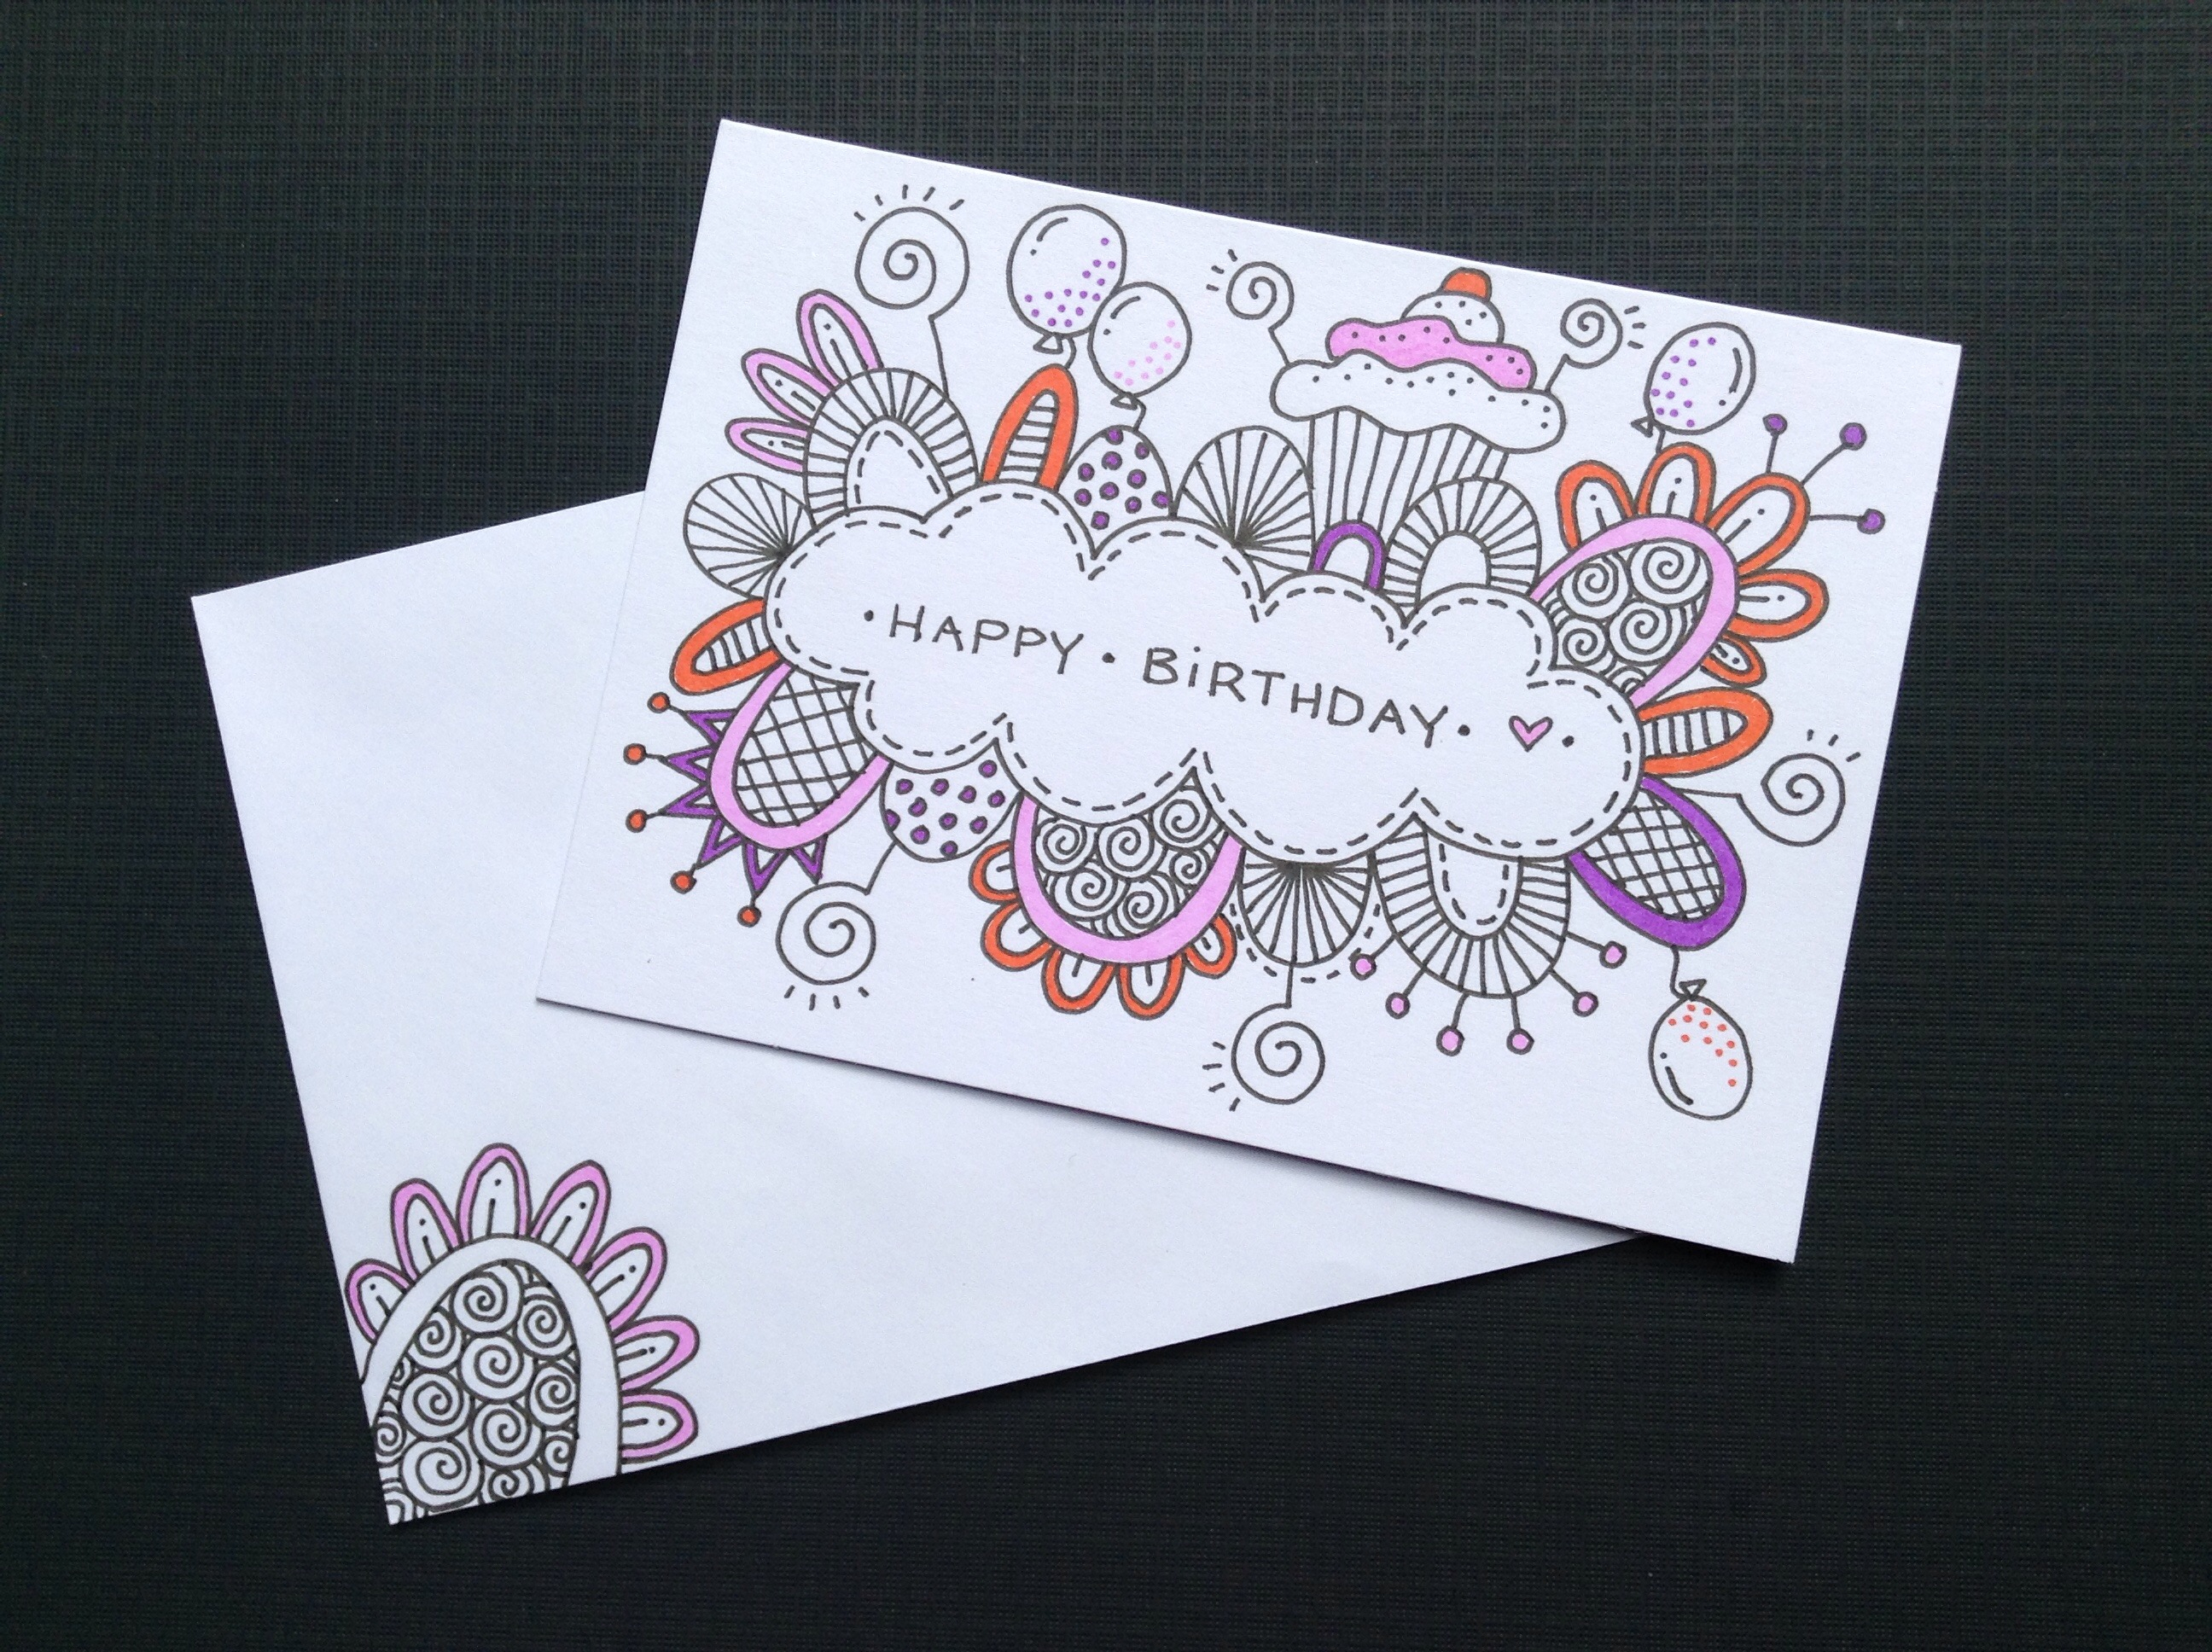 drawings for mother's birthday ; birthday-card-drawing-ideas-25-best-ideas-about-hand-drawn-cards-on-pinterest-love-cards-1